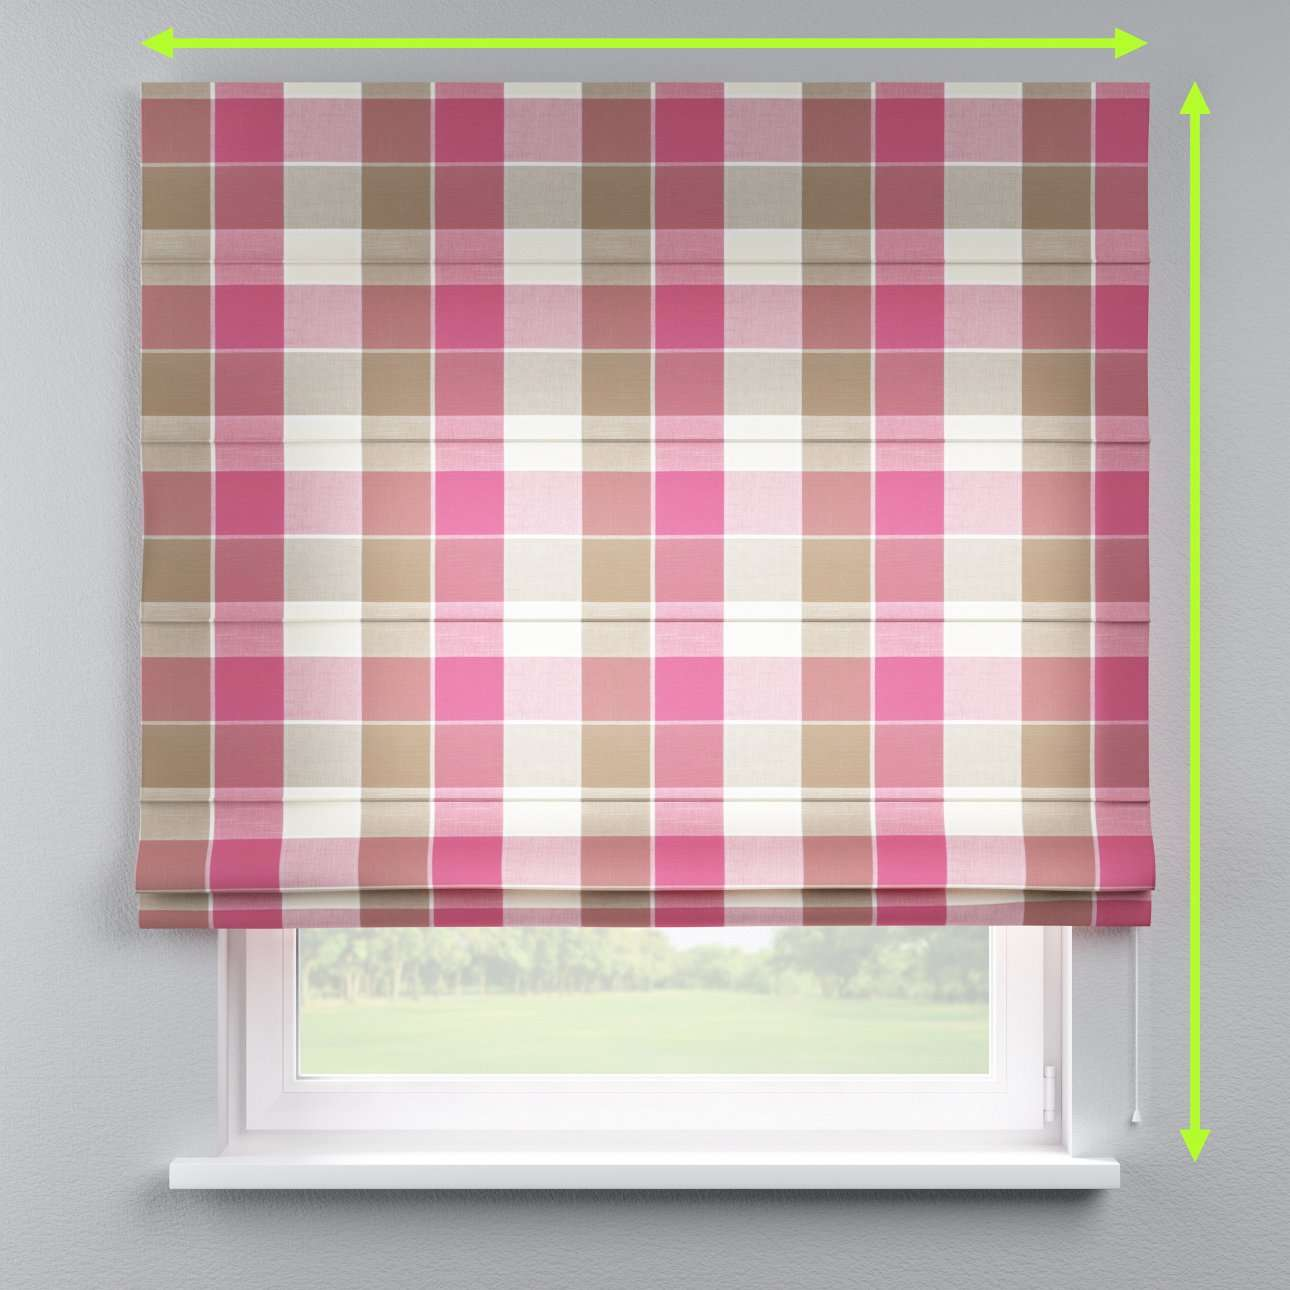 Capri roman blind in collection Cardiff, fabric: 136-31